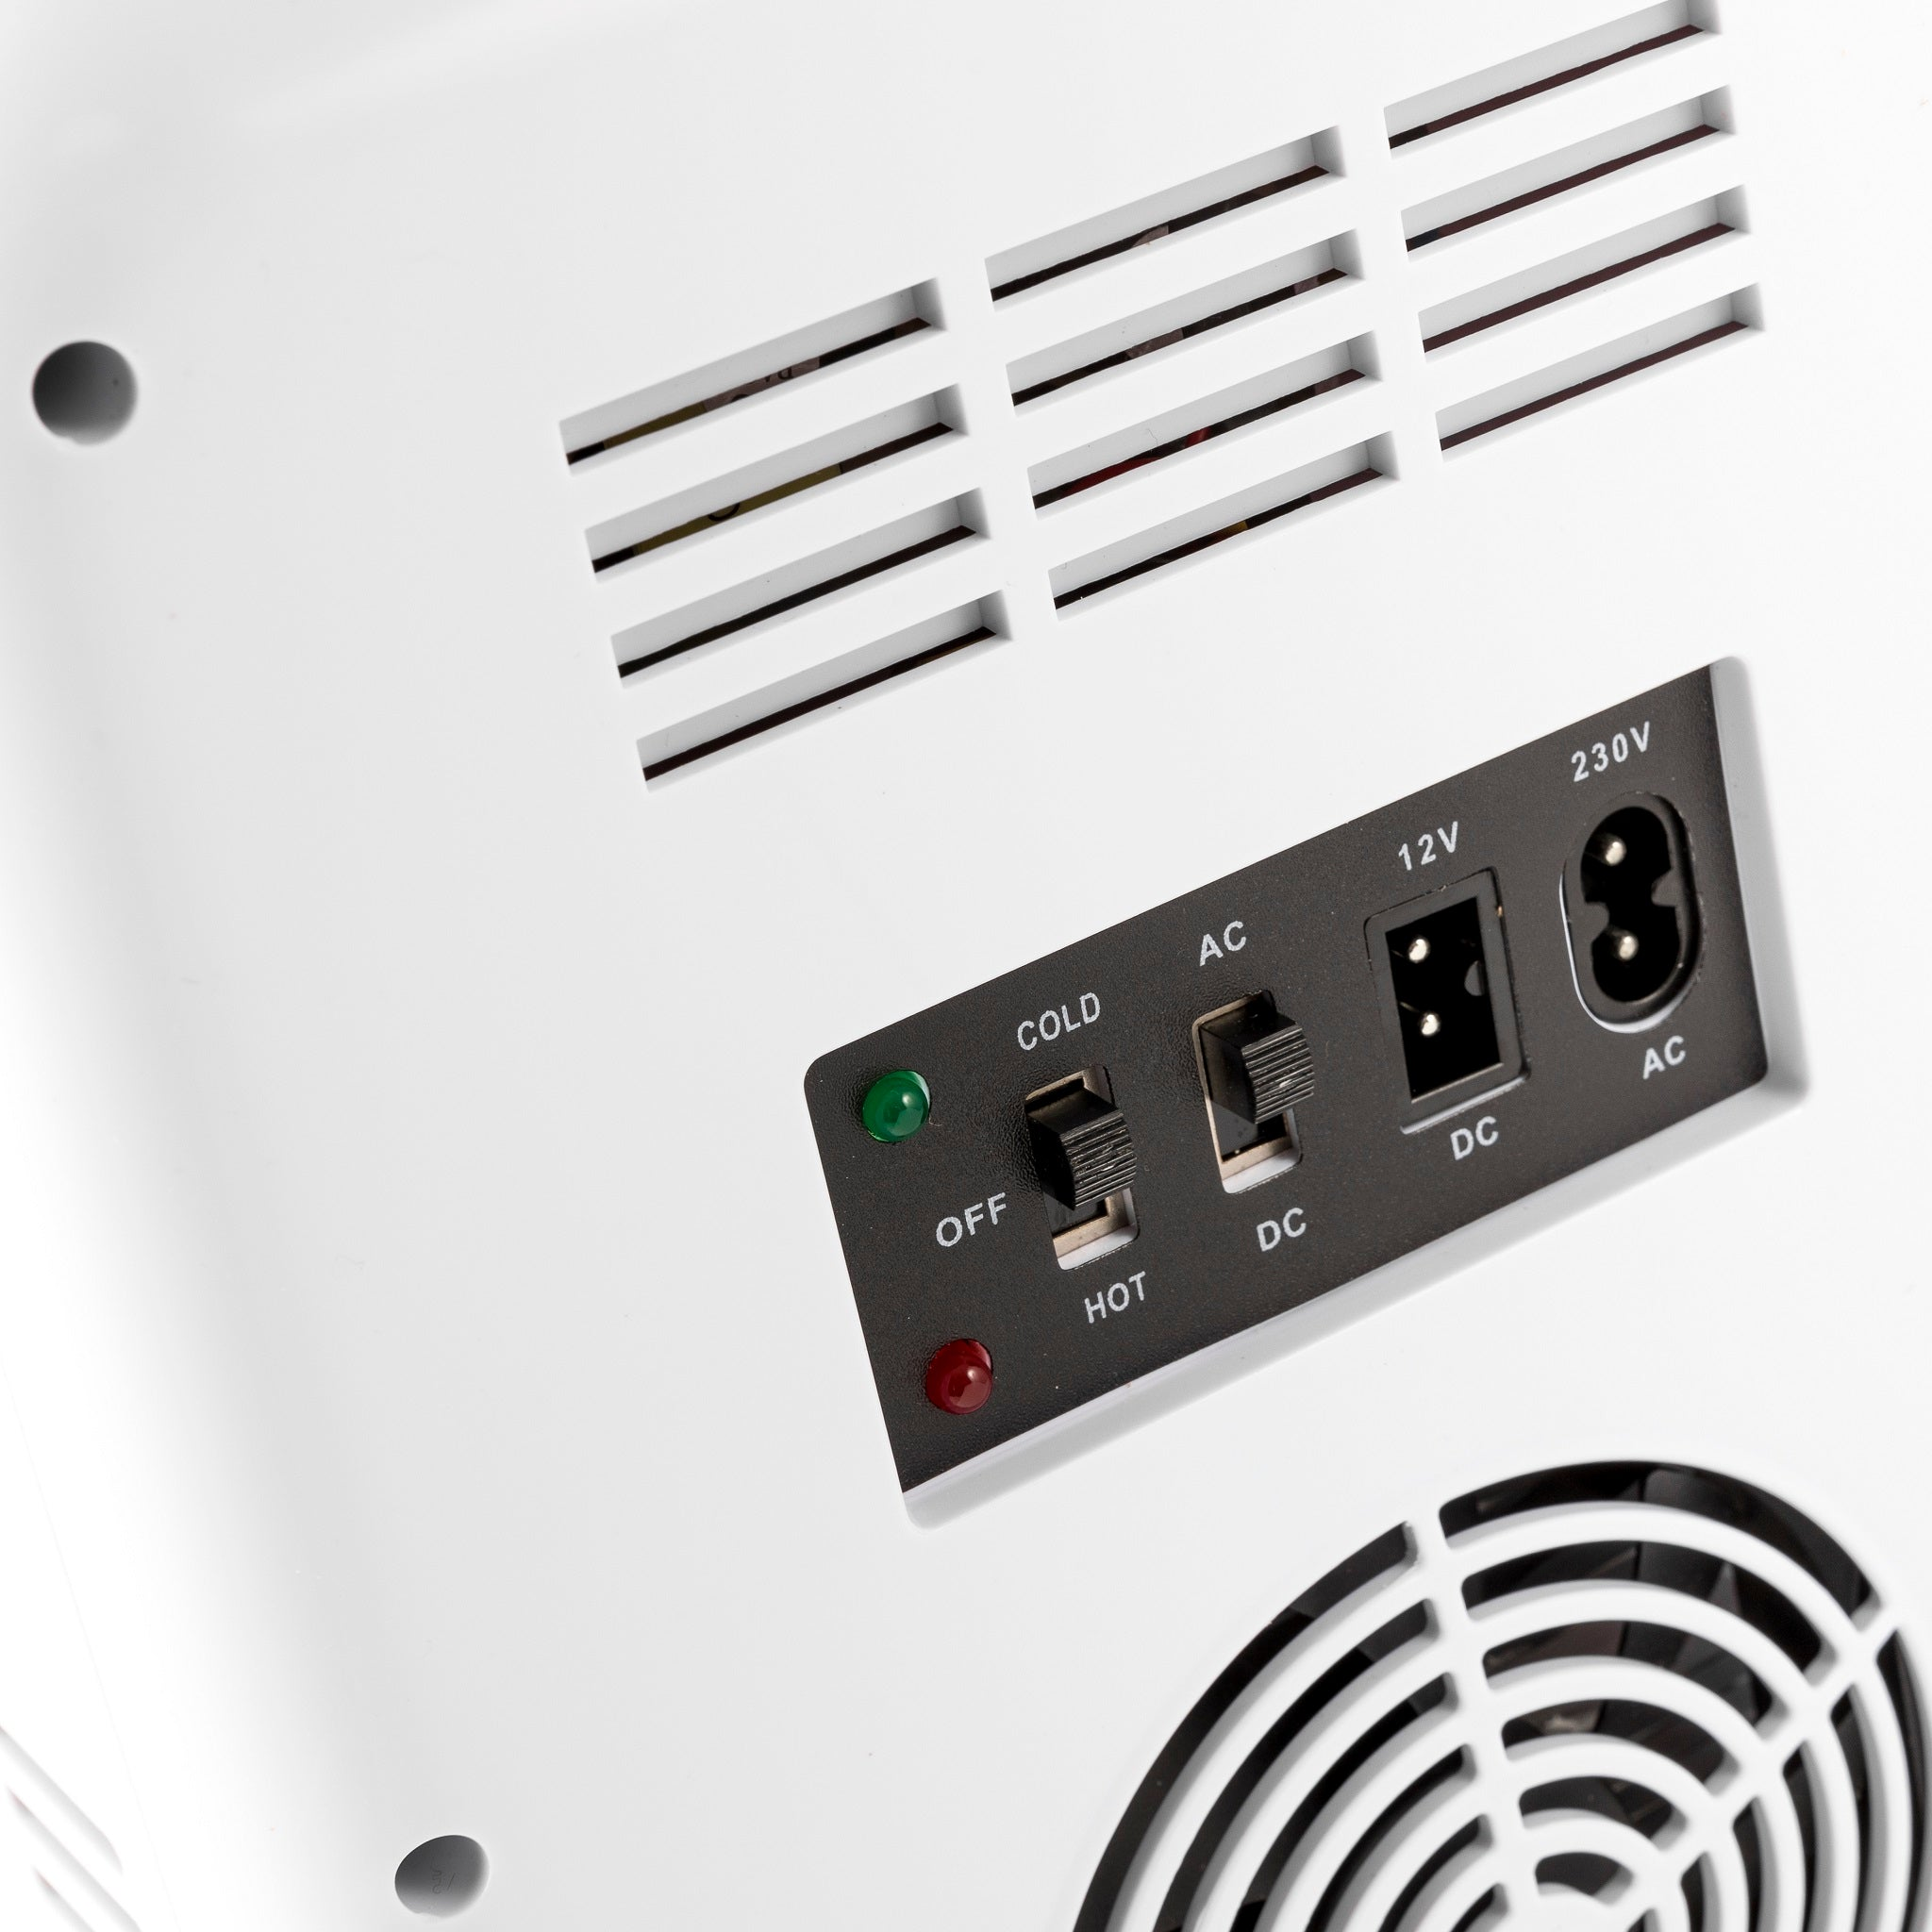 Subcold Ultra 6L mini fridge with multiple power options